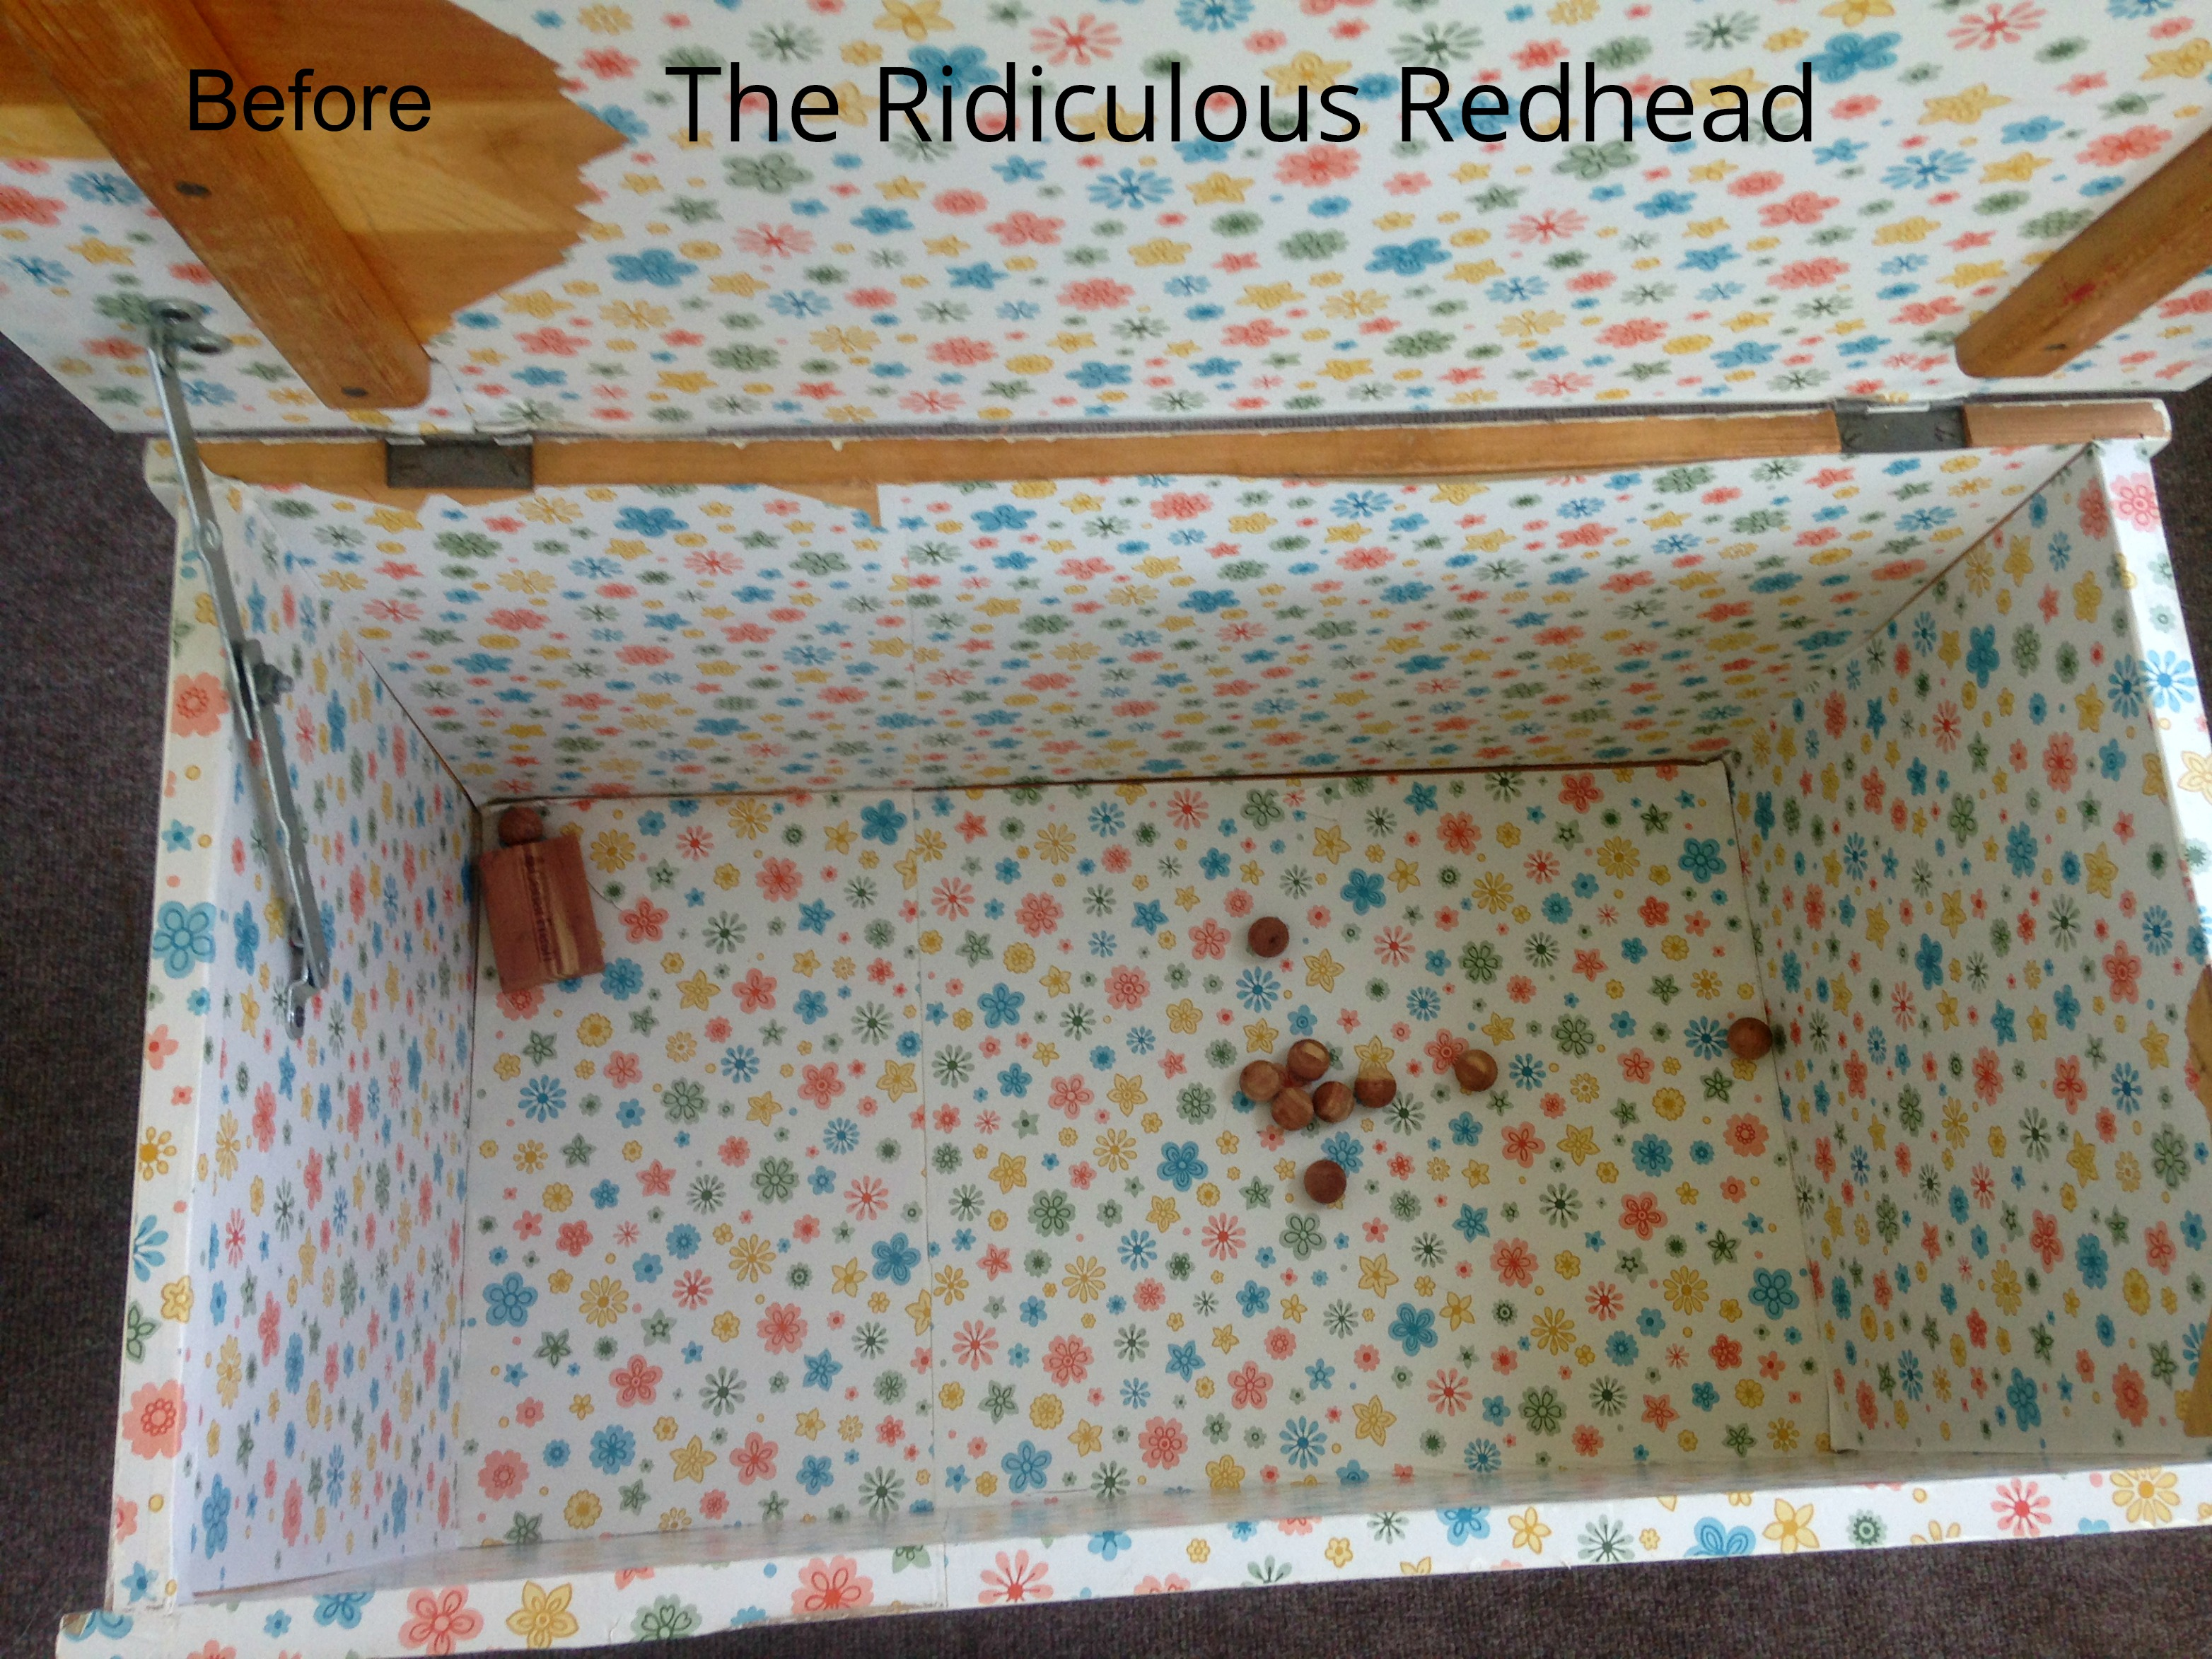 Ridiculous Redhead Toy Chest Inside Before